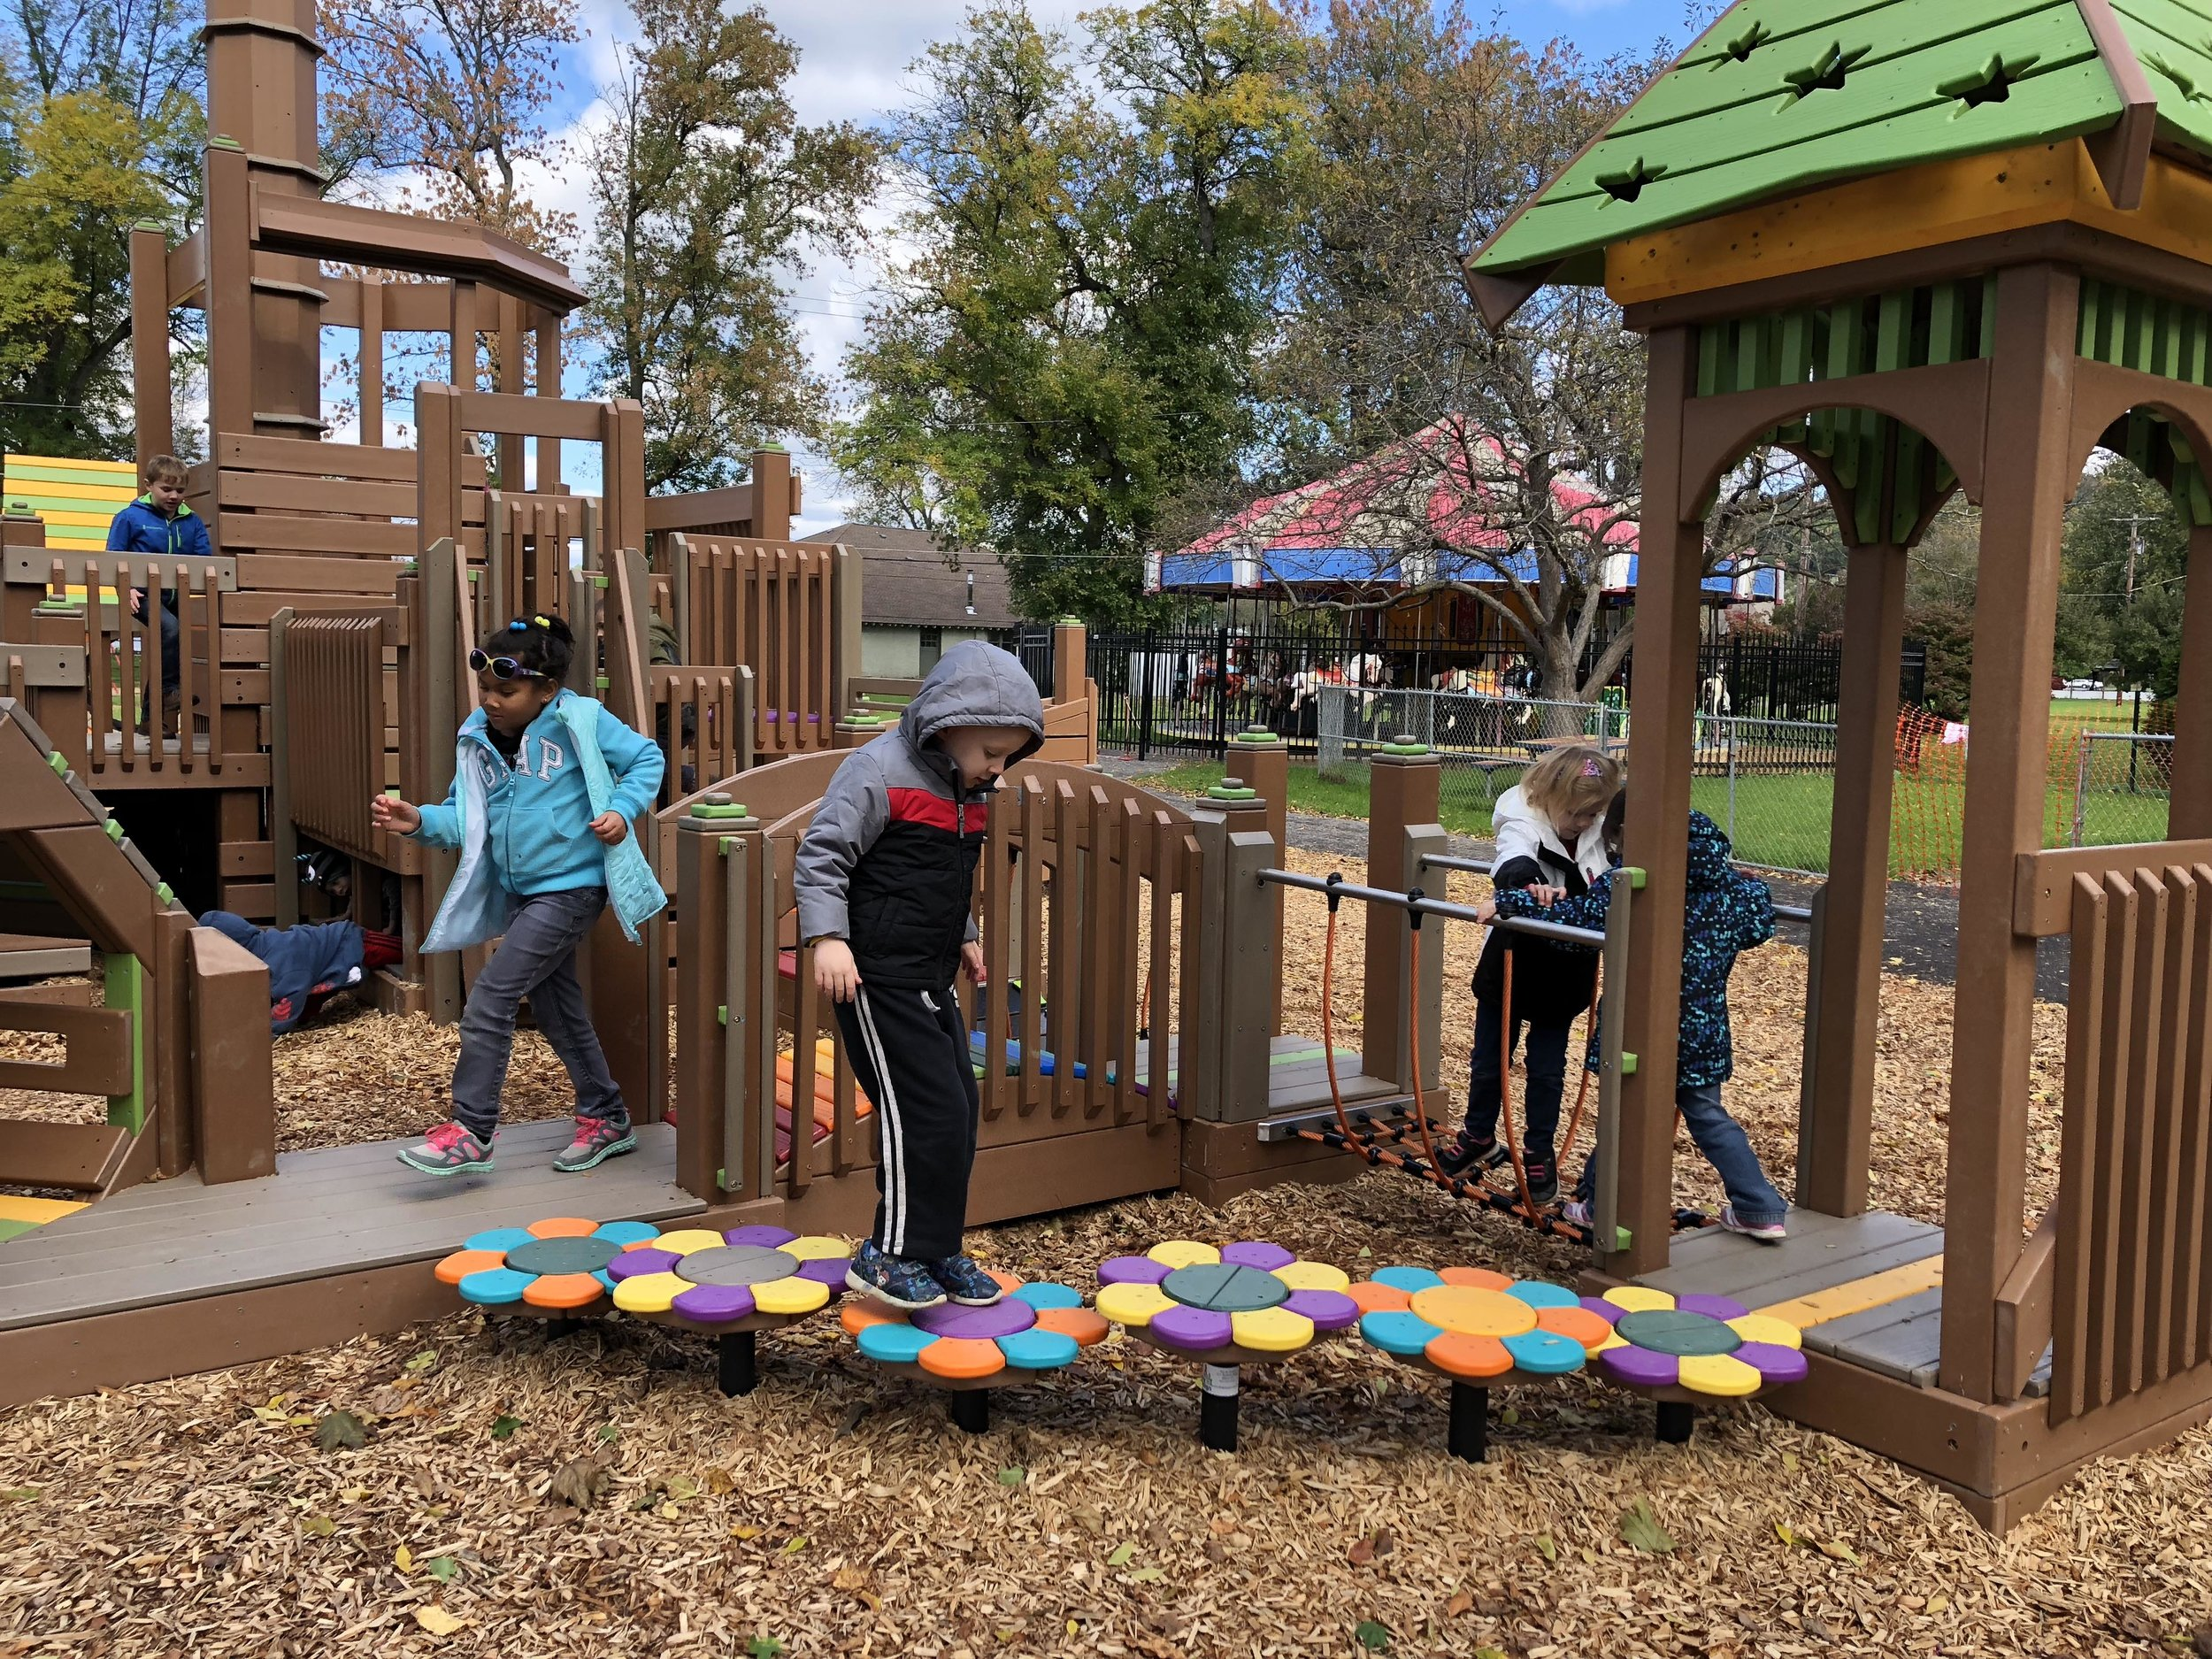 Phase I is open! - In mid-September 2018, The Friends of Stewart Park held a Community Build of the area's first Accessible Playground. Over six days, twelve hours a day, and in three shifts a day, over 900 volunteers and 45 organizations worked alongside playground design firm Play by Design to create the pre-school sections of a new playground for children of all abilities. This beautifully-designed inclusive playground will dramatically enhance Stewart Park as a regional destination for families, individuals, children of all ages, and visitors. Learn More.